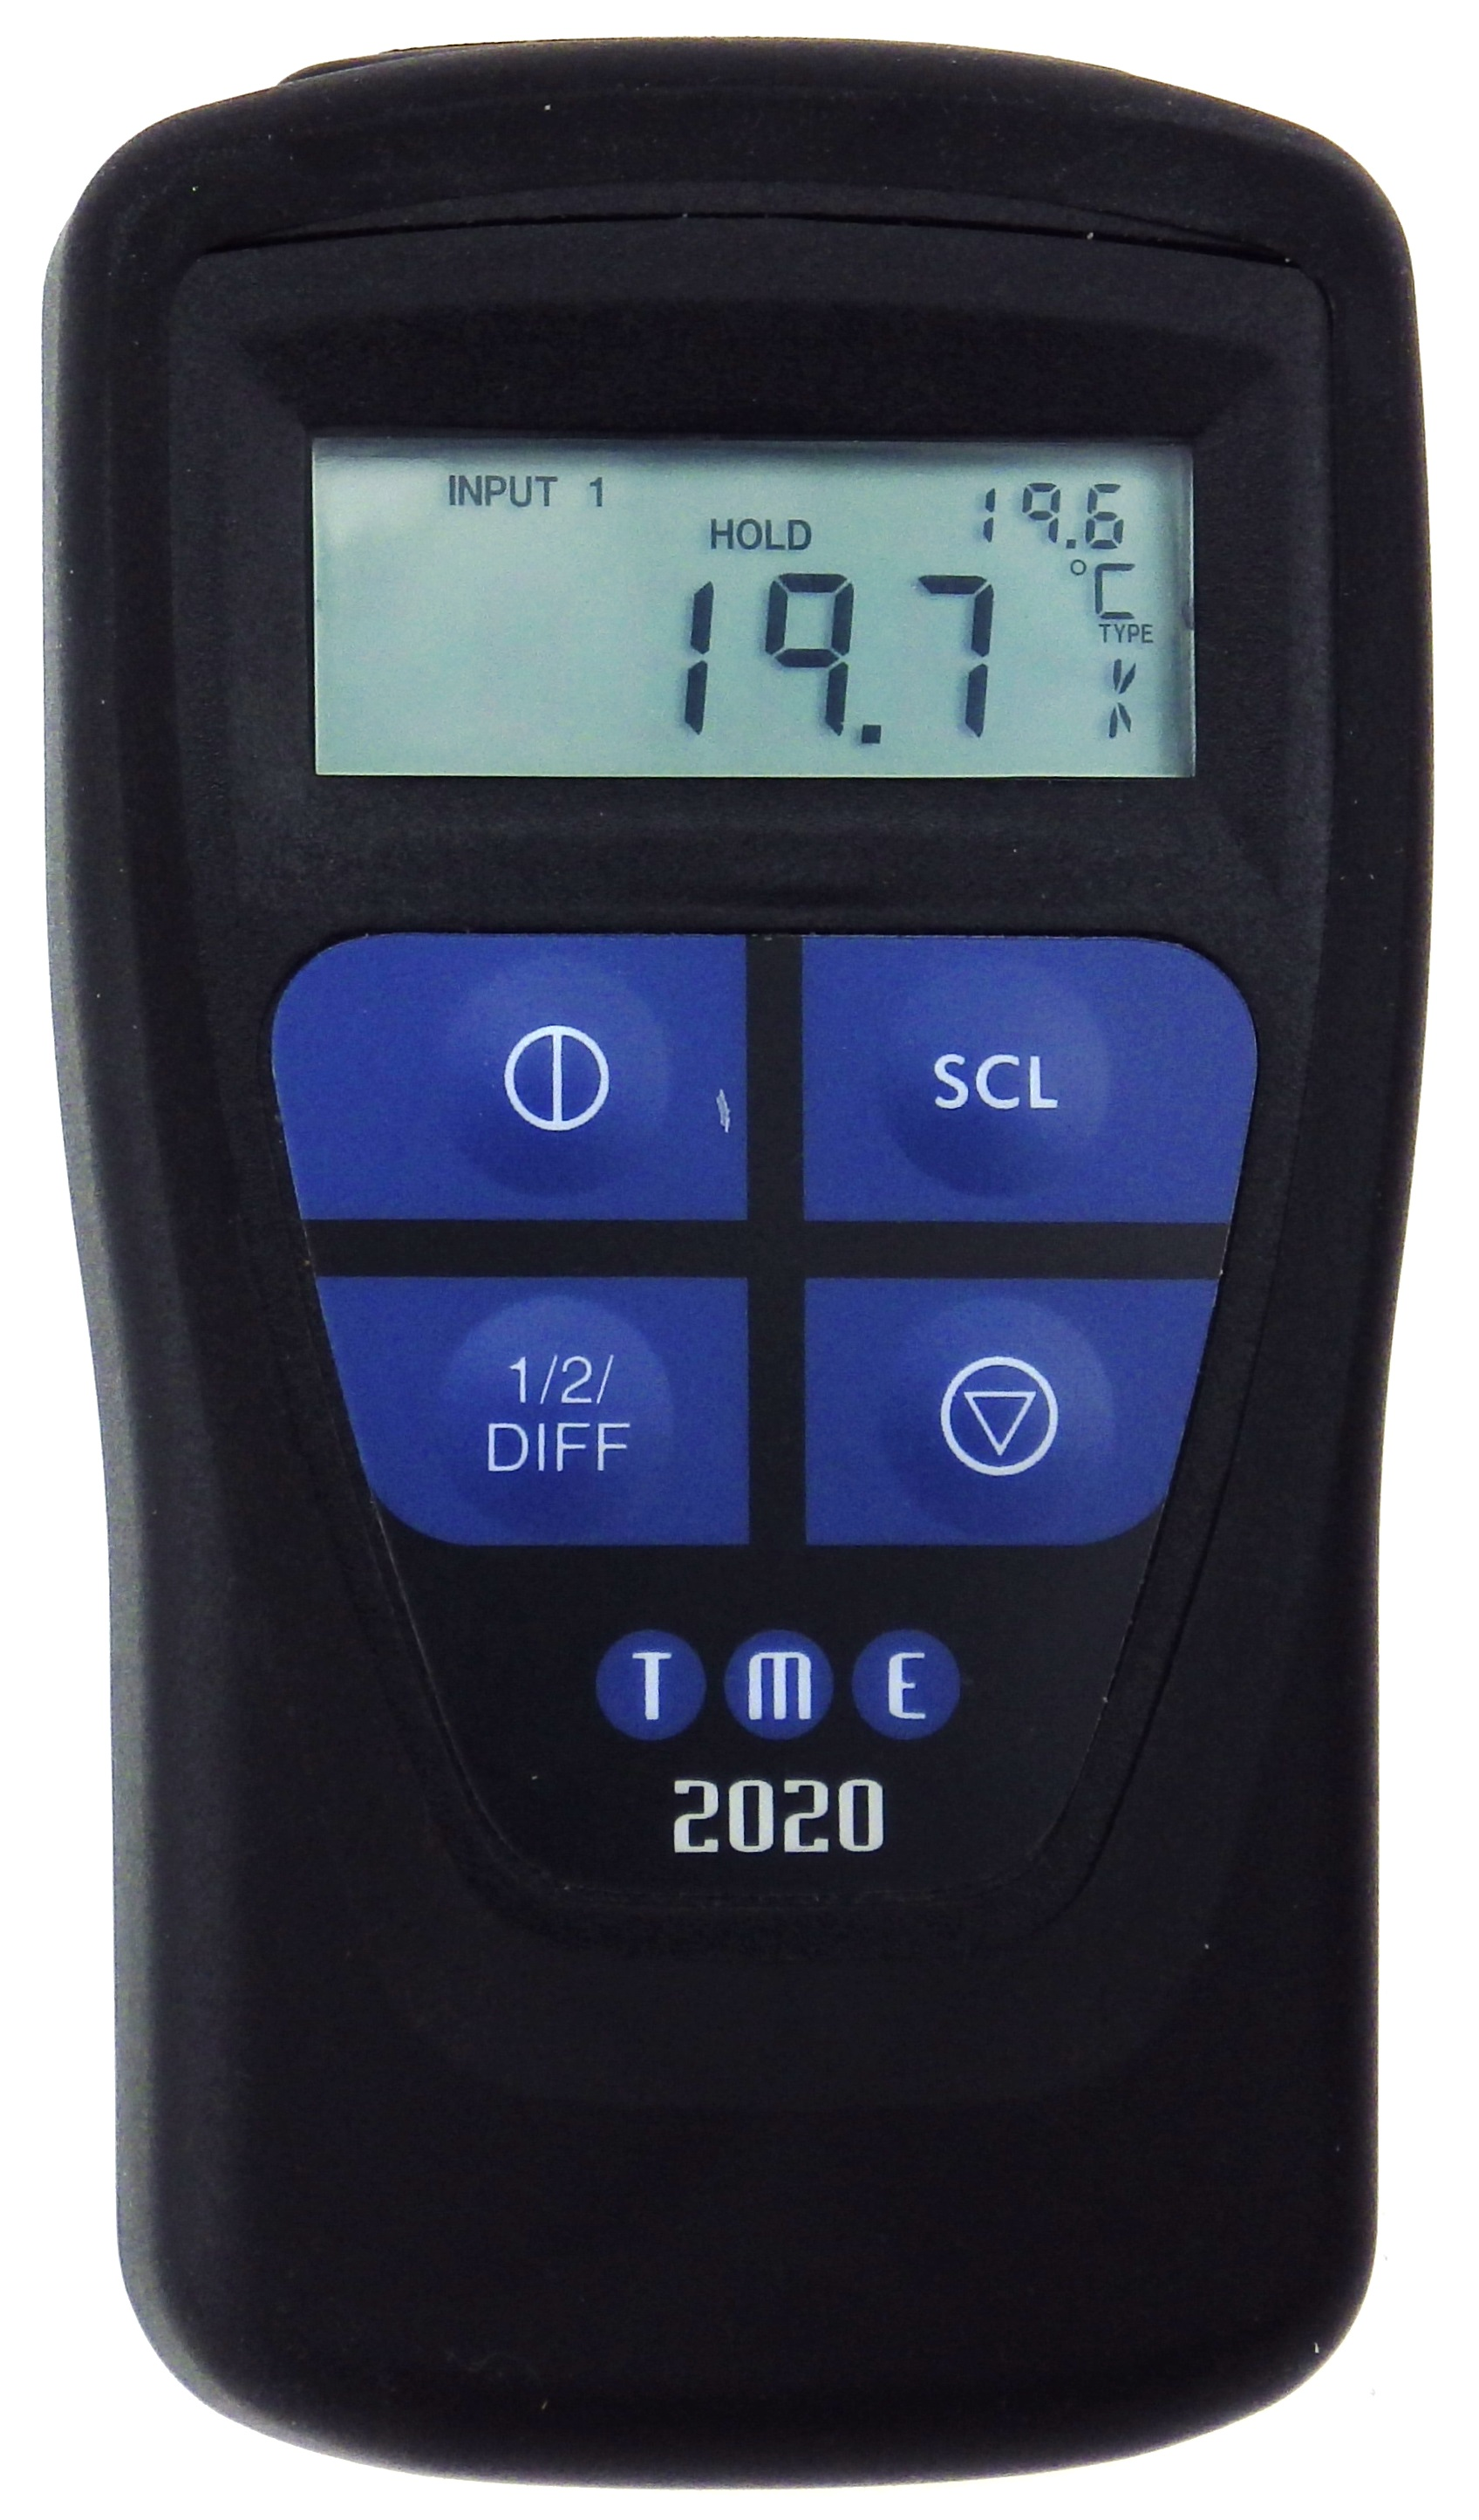 This Waterproof, Self-Calibrating Thermometer has dual input and infra-red capability, along with seven thermocouple typ